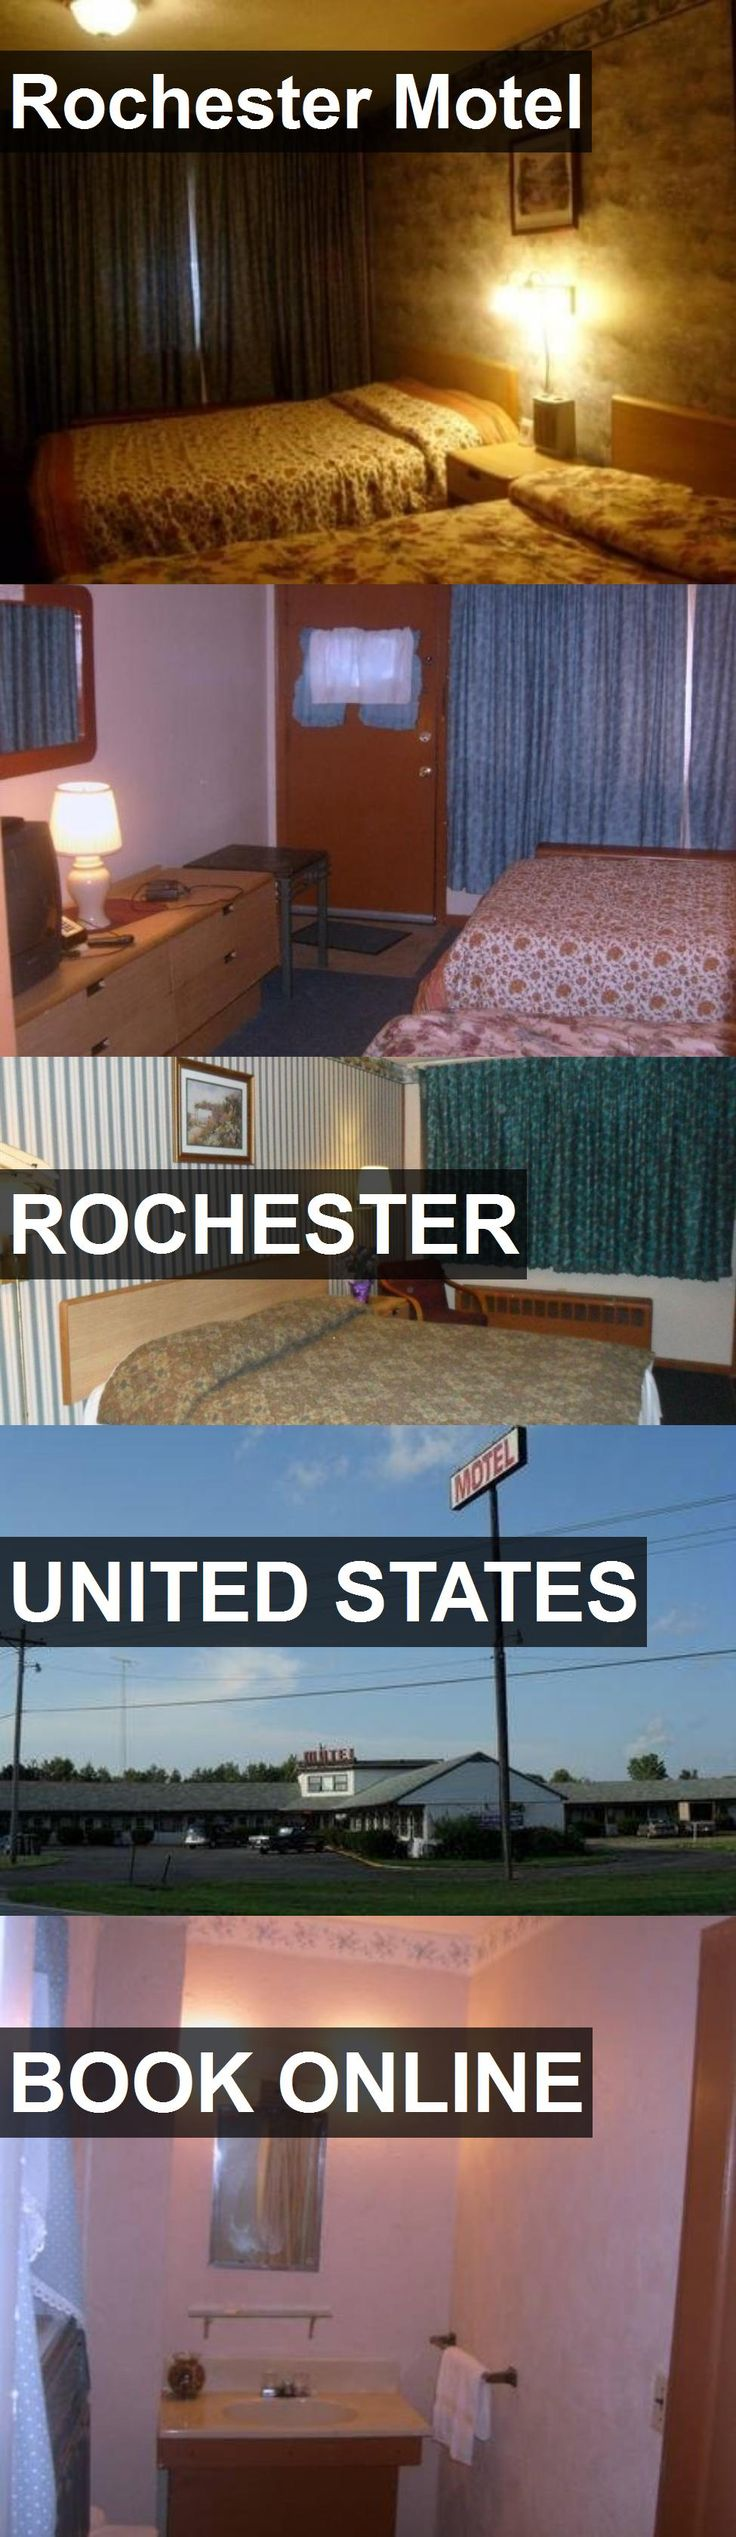 Hotel Rochester Motel in Rochester, United States. For more information, photos, reviews and best prices please follow the link. #UnitedStates #Rochester #travel #vacation #hotel